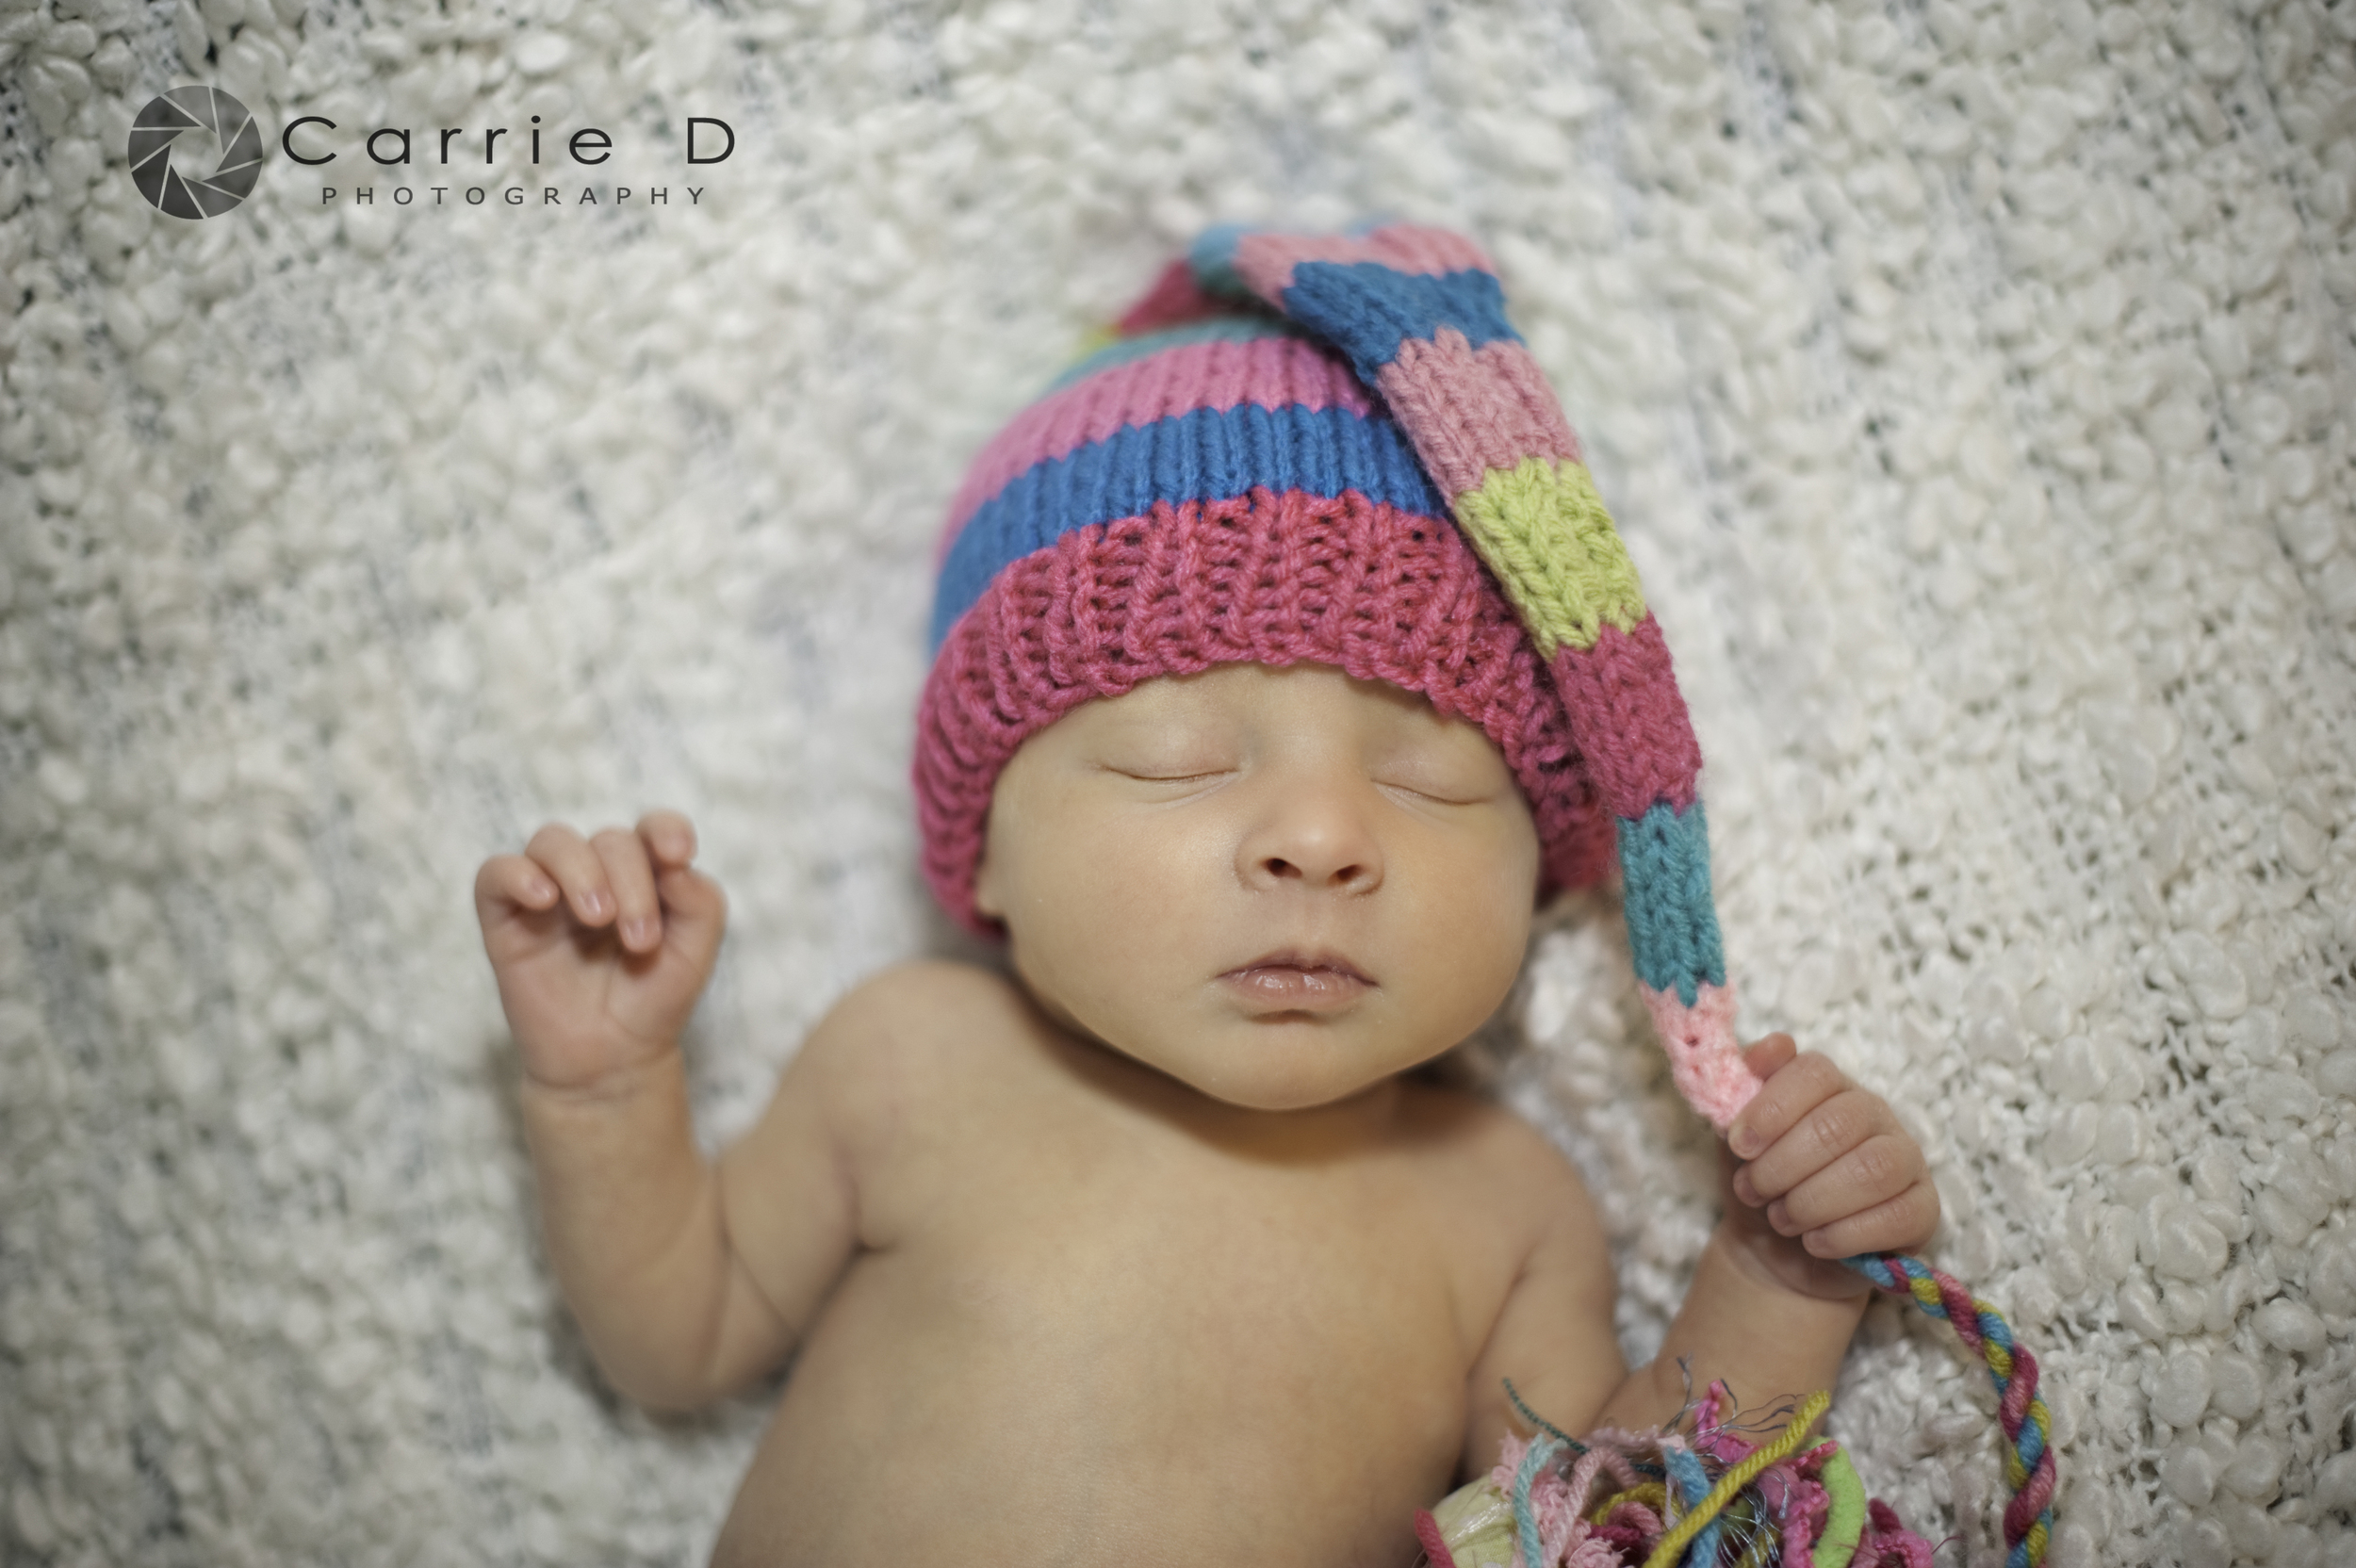 Howard County Photographer – Howard County Portrait Photographer – Howard County Newborn Photographer – Howard County Baby Photographer - Howard County Infant Photographer Howard County Child Photographer – Howard County Sibling Photographer – Howard County Natural Light Photographer – Howard County Lifestyle Photographer – Howard County Natural Light Portrait Photographer - Maryland Photographer – Maryland Portrait Photographer – Maryland Newborn Photographer – Maryland Child Photographer – Maryland Sibling Photographer – Maryland Natural Light Photographer – Maryland Lifestyle Photographer – Maryland Natural Light Portrait Photographer - Maryland Baby Photographer - Maryland Infant Photographer - Annabelle_DSC_4875B